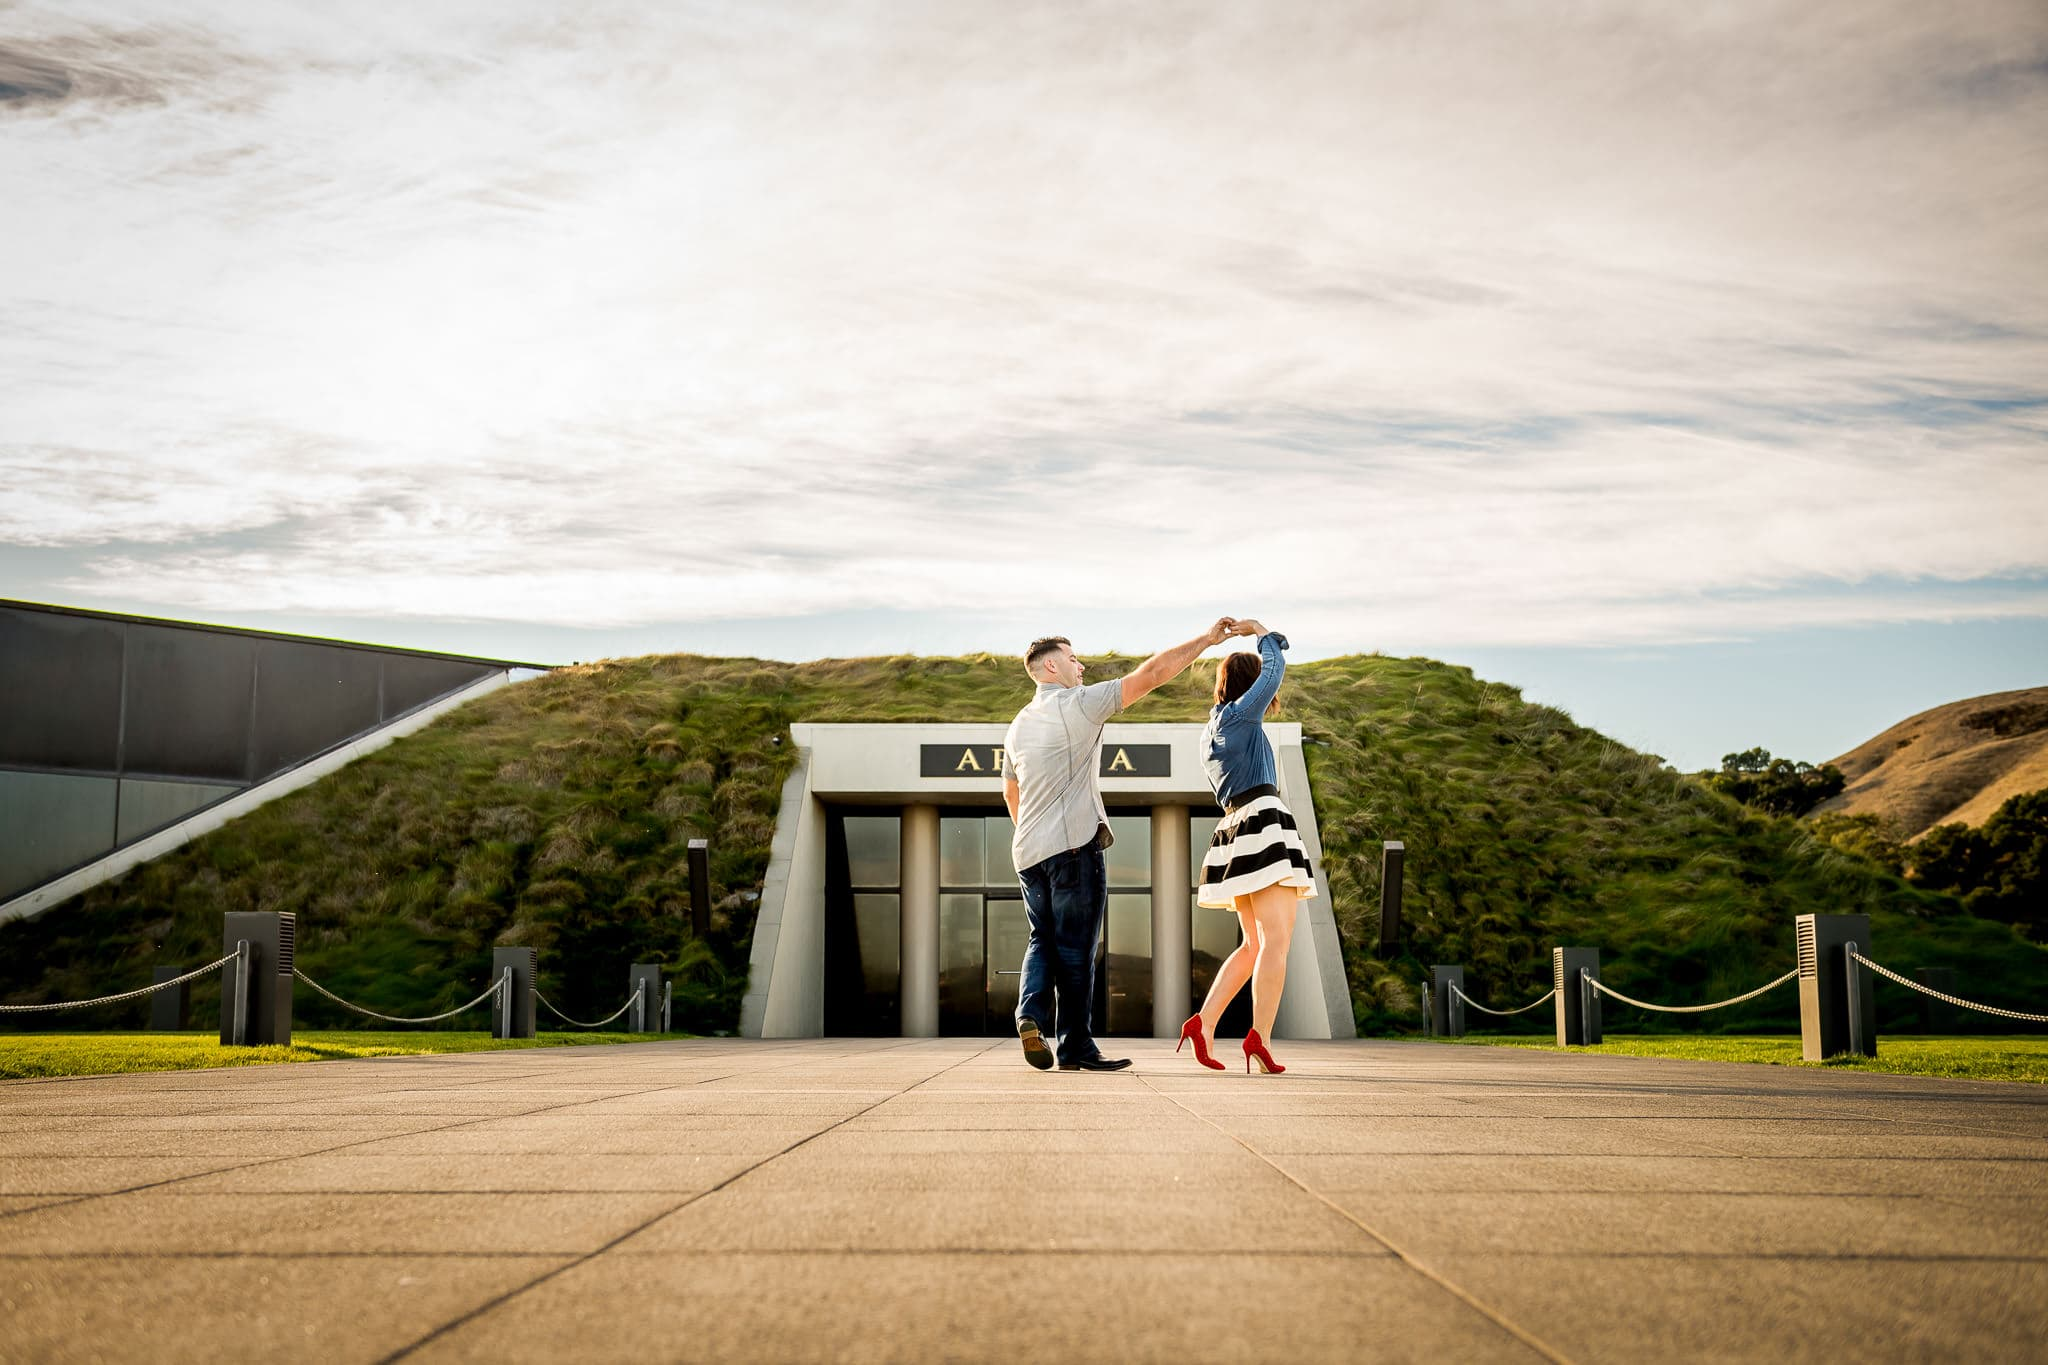 An engaged couple dancing near the entrance of the bunker-like building at Artesa Winery in Napa Valley